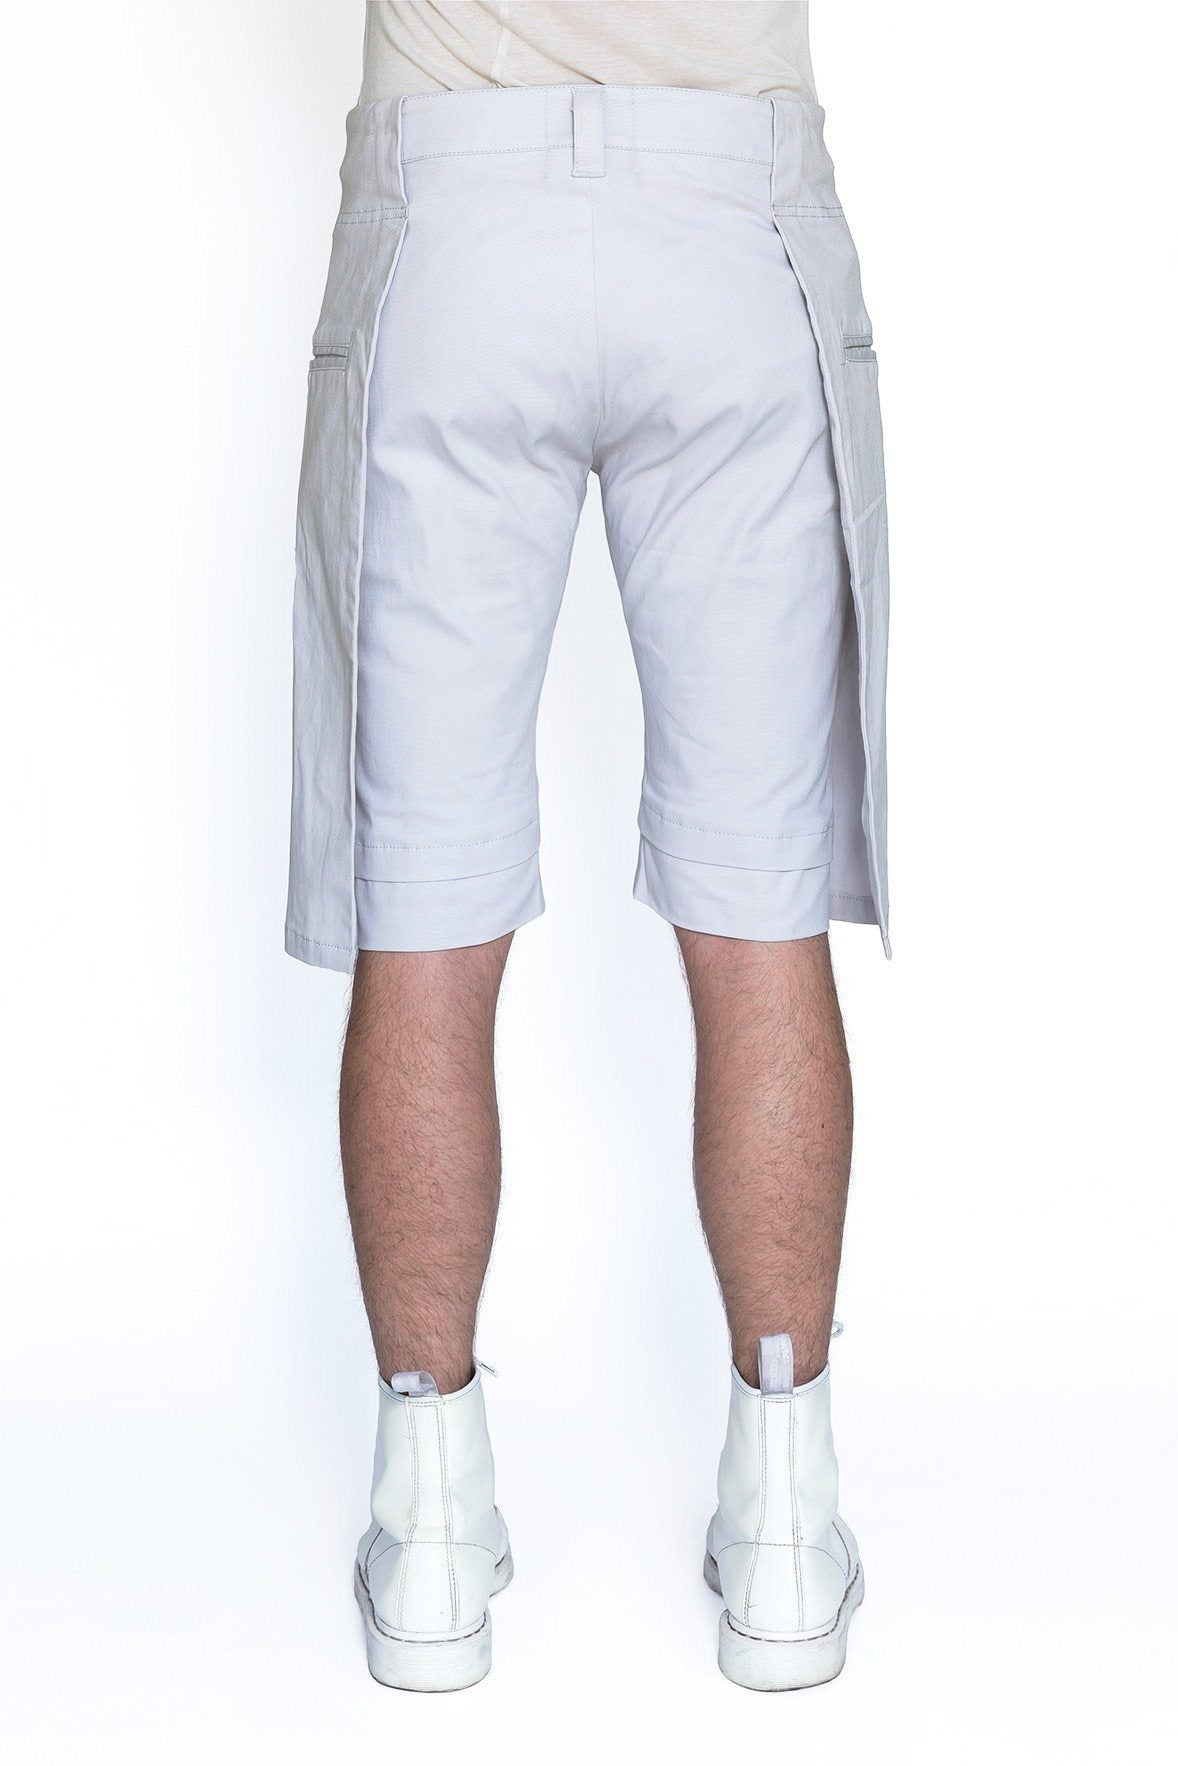 AVIANO SHORTS - SIXELAR